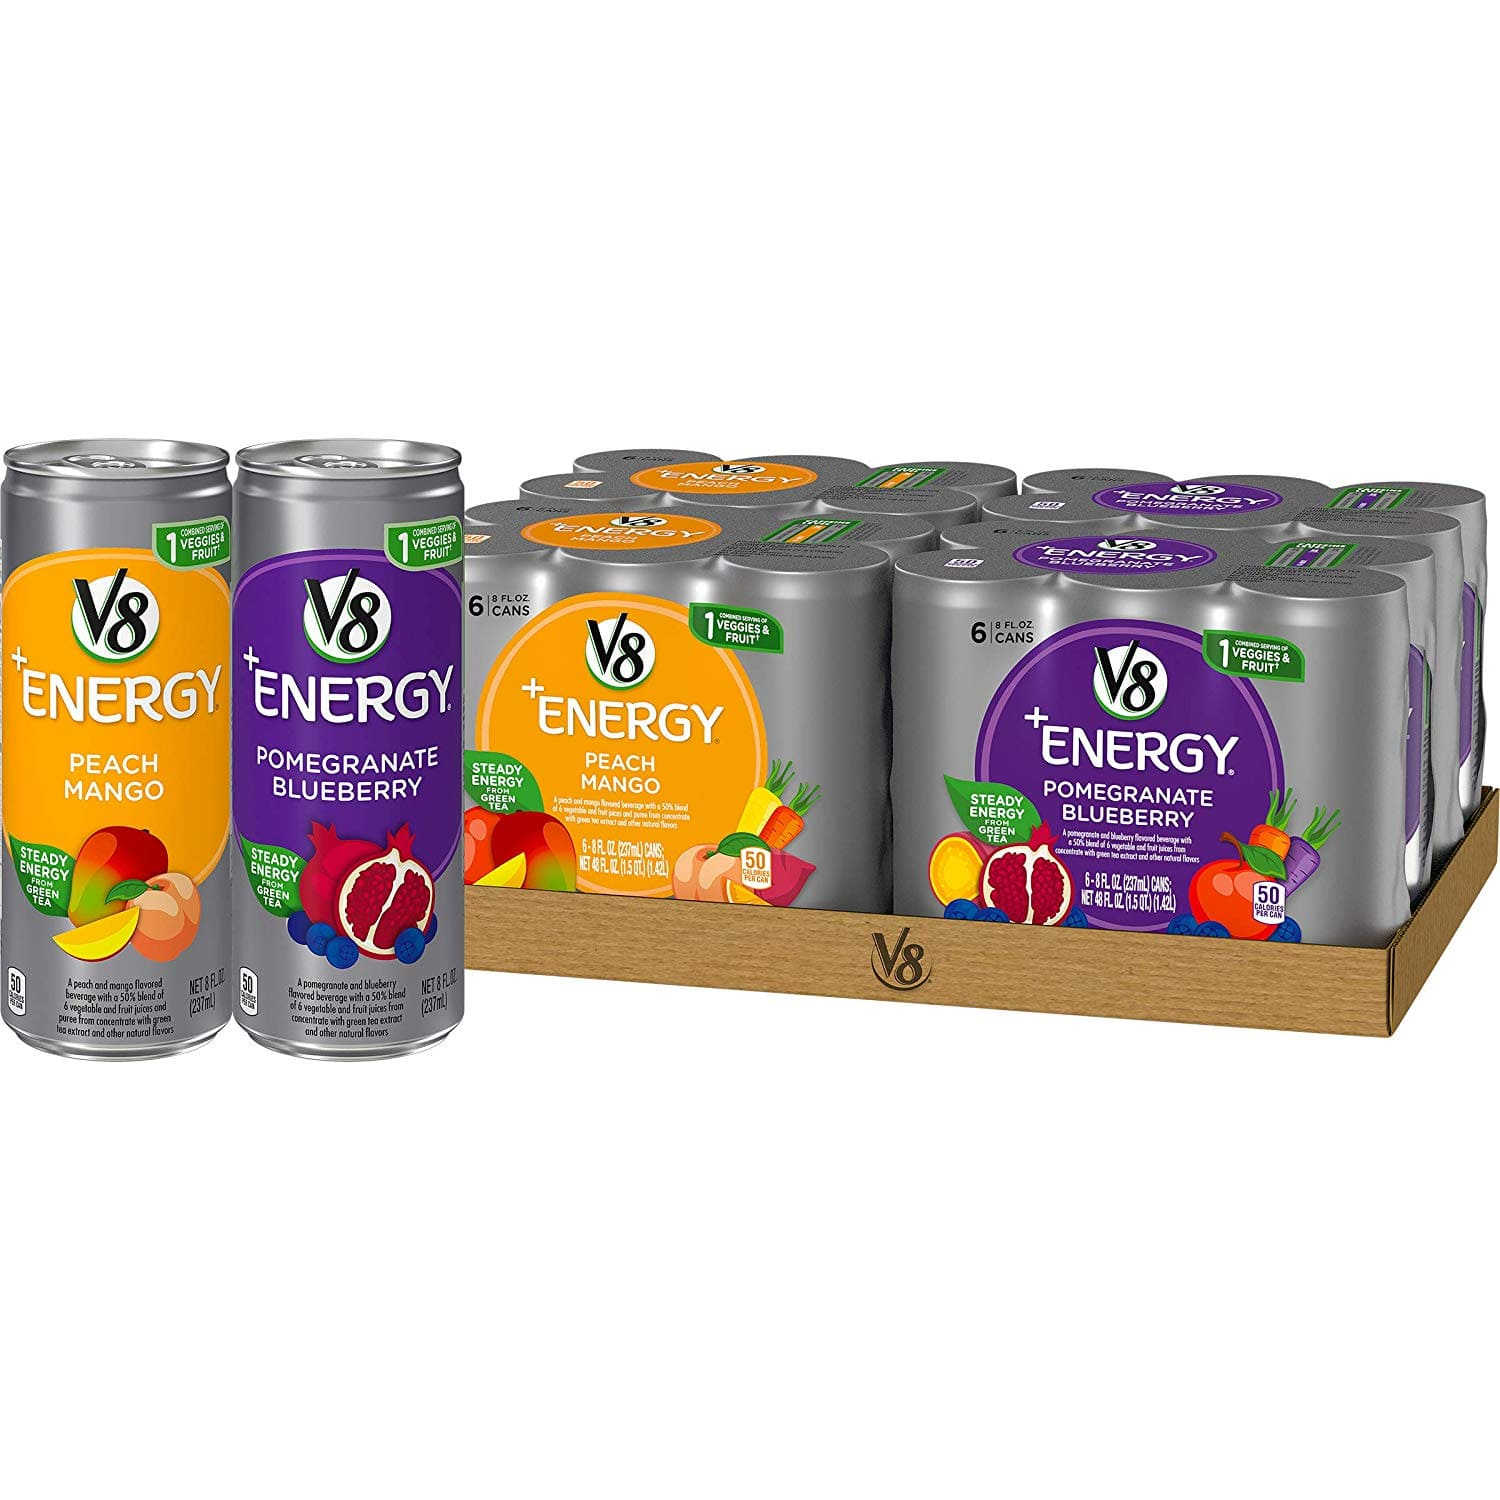 24-Pack of 8oz V8 +Energy Drinks (Peach Mango & Pomegranate) $6.43 or less w/ S&S & More + Free S&H *act fast*